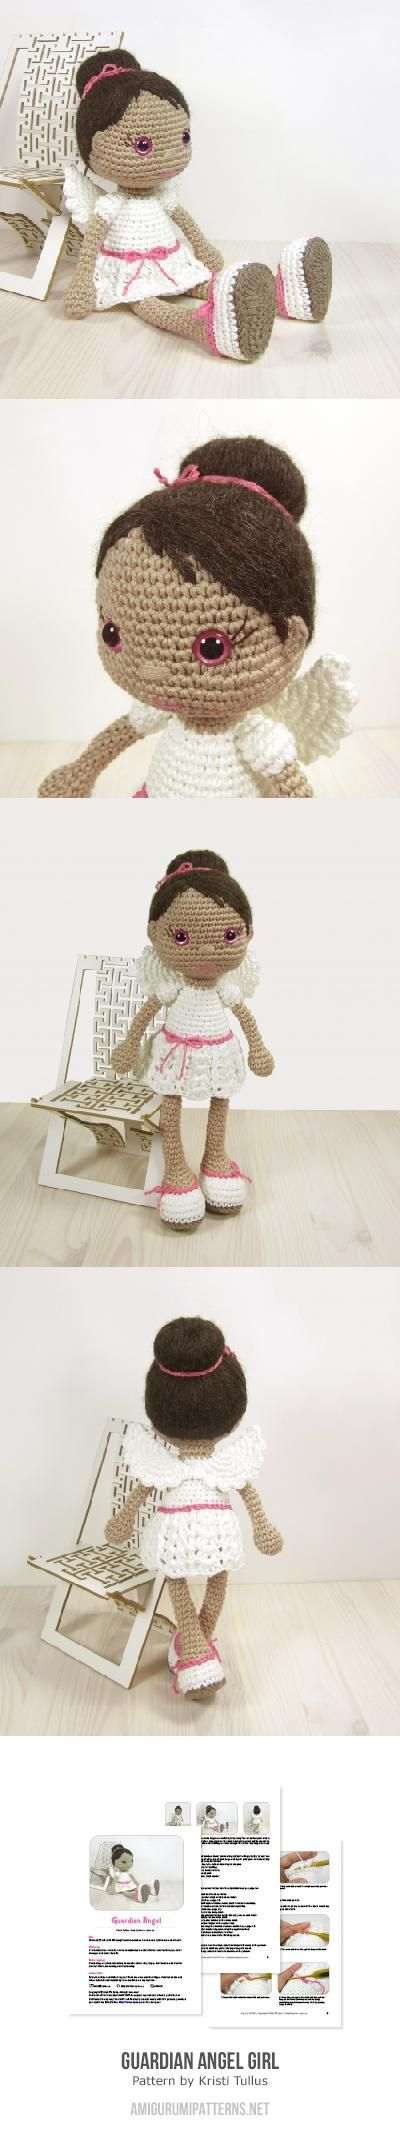 Guardian Angel Girl Amigurumi. (Pattern available to buy).